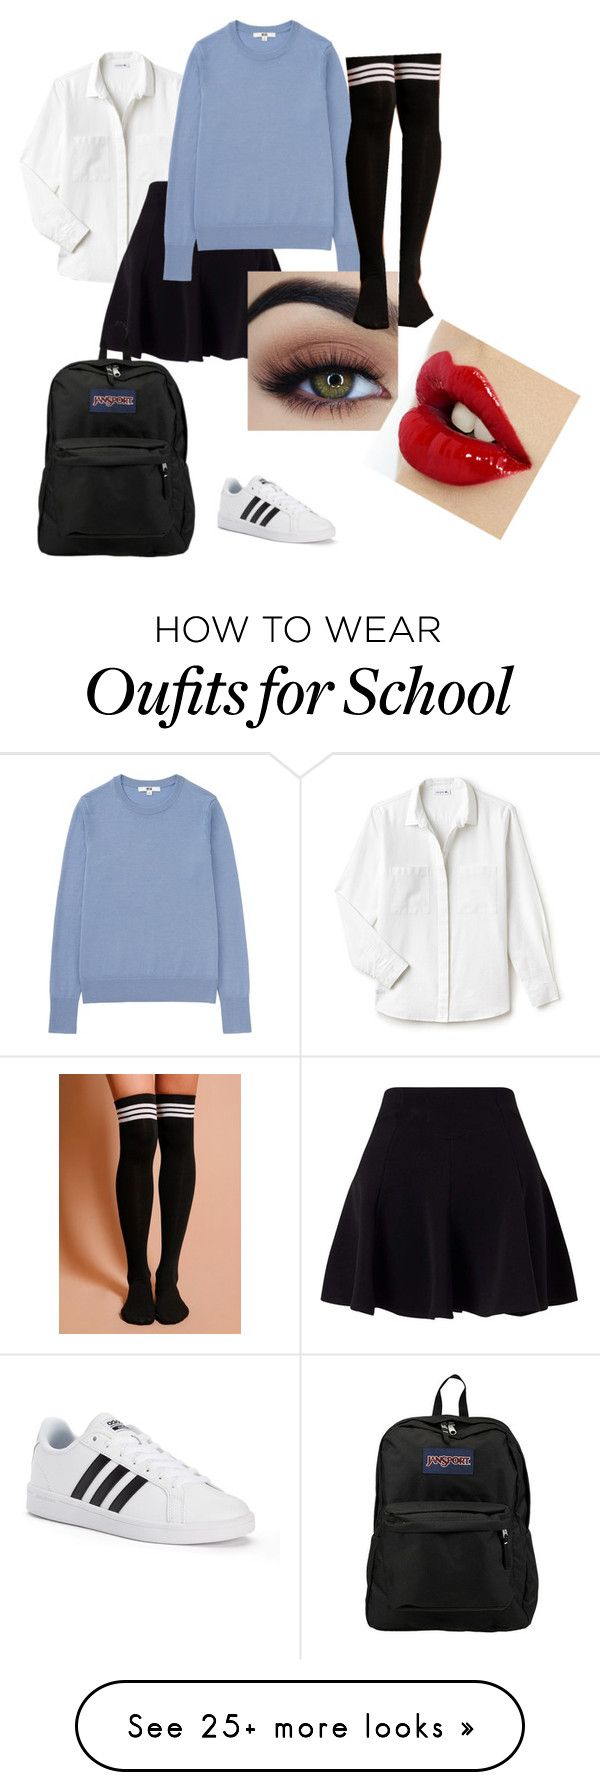 """School Uniform"" by dasharaywood on Polyvore featuring Lacoste, Miss Selfridge, Uniqlo, adidas and JanSport"